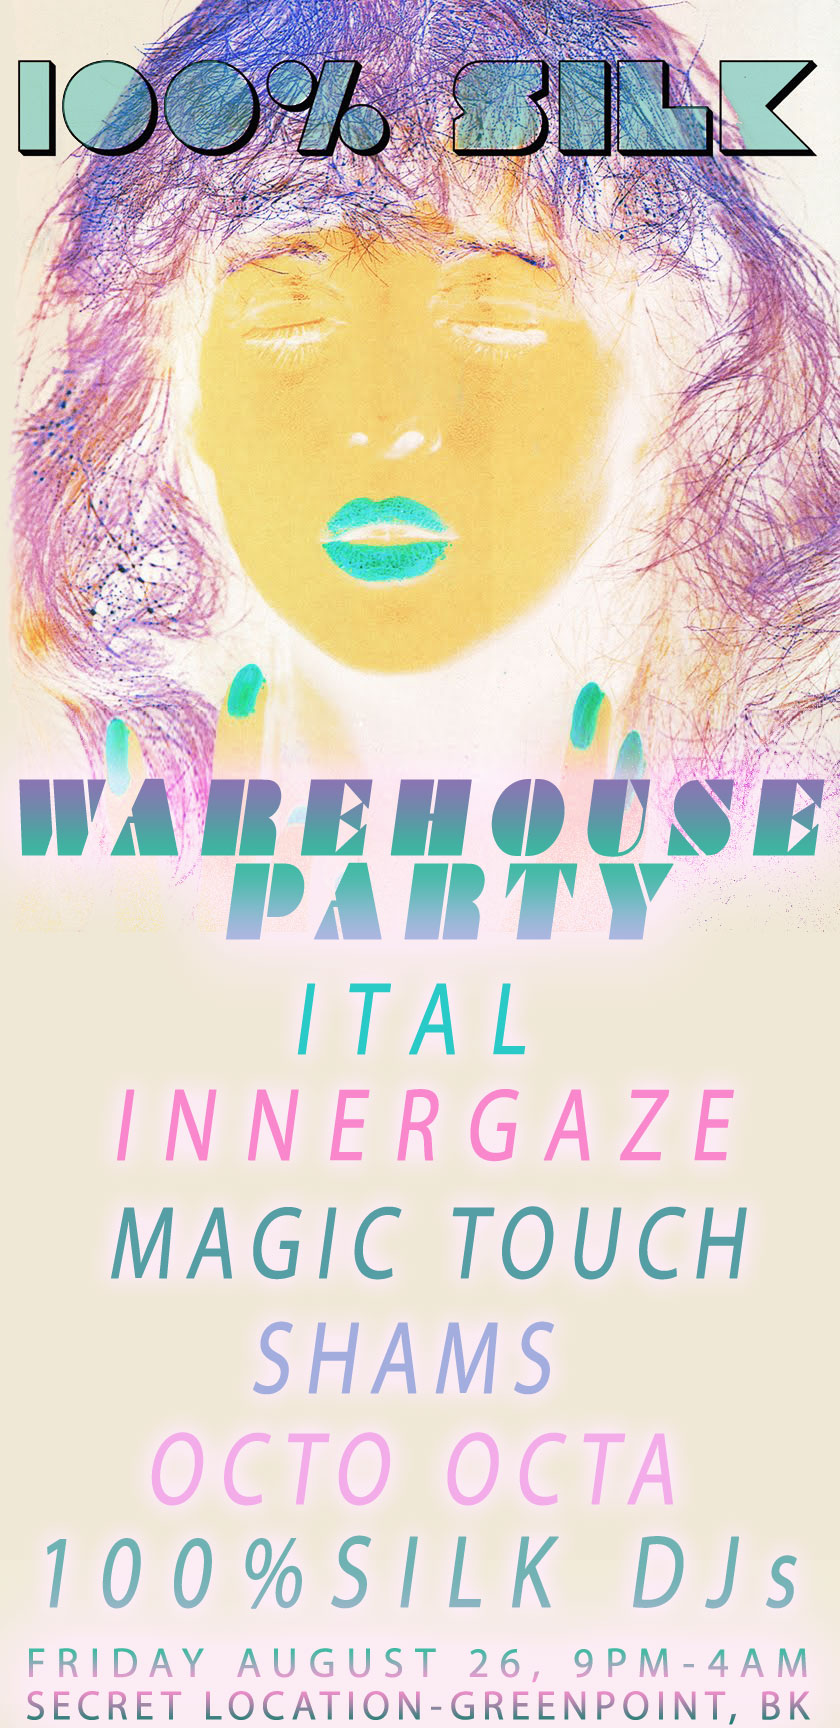 100% Silk Warehouse Party: Ital, Innergaze, Magic Touch, Shams, Octo Octa  2011